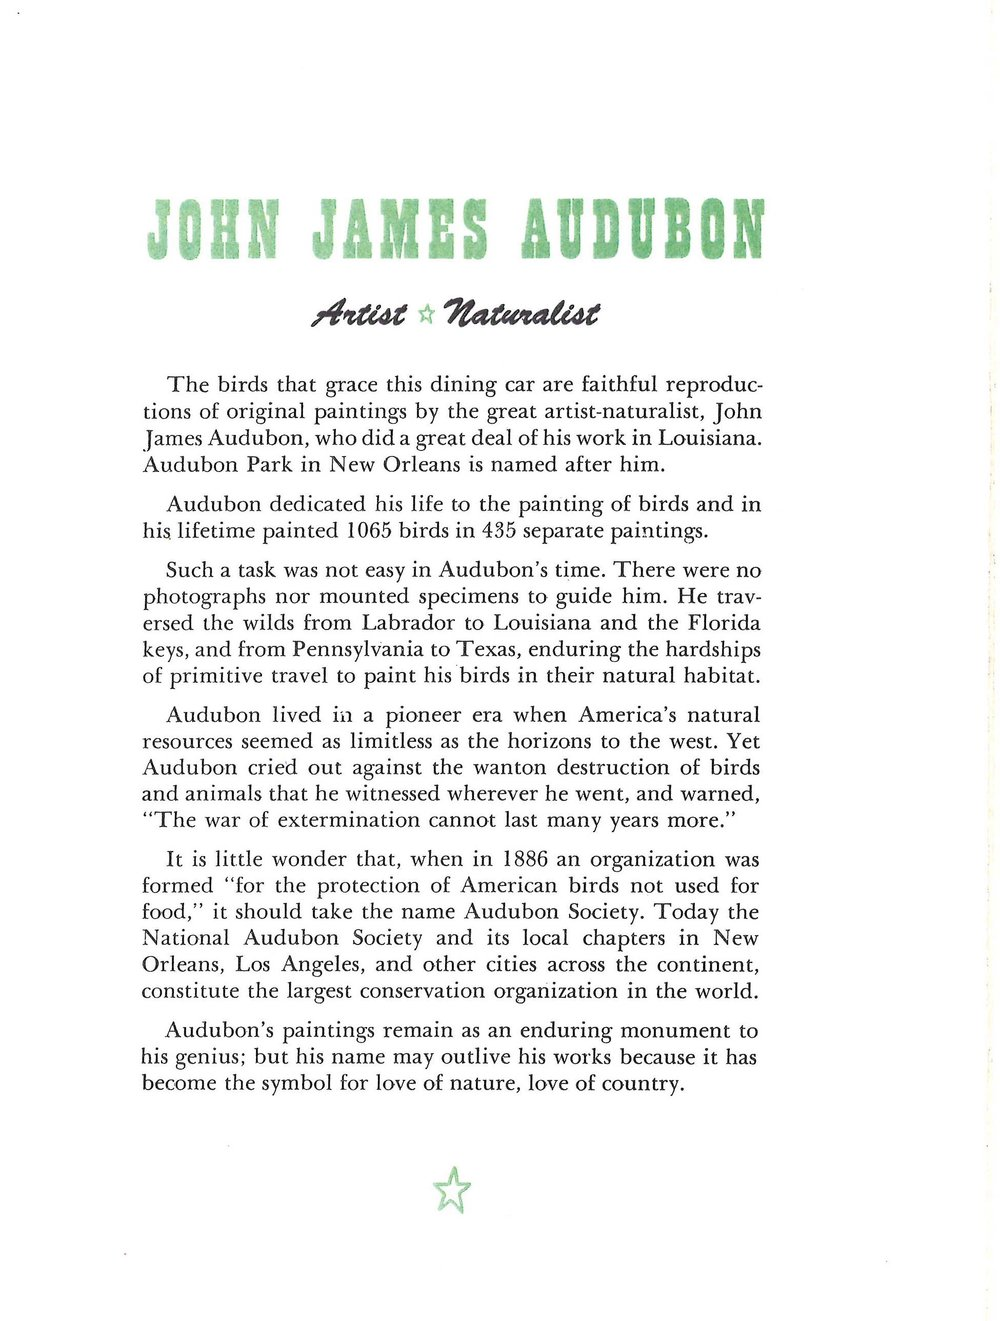 SP+John+James+Audubon+Breakfast+Menu+3-64 3.jpg